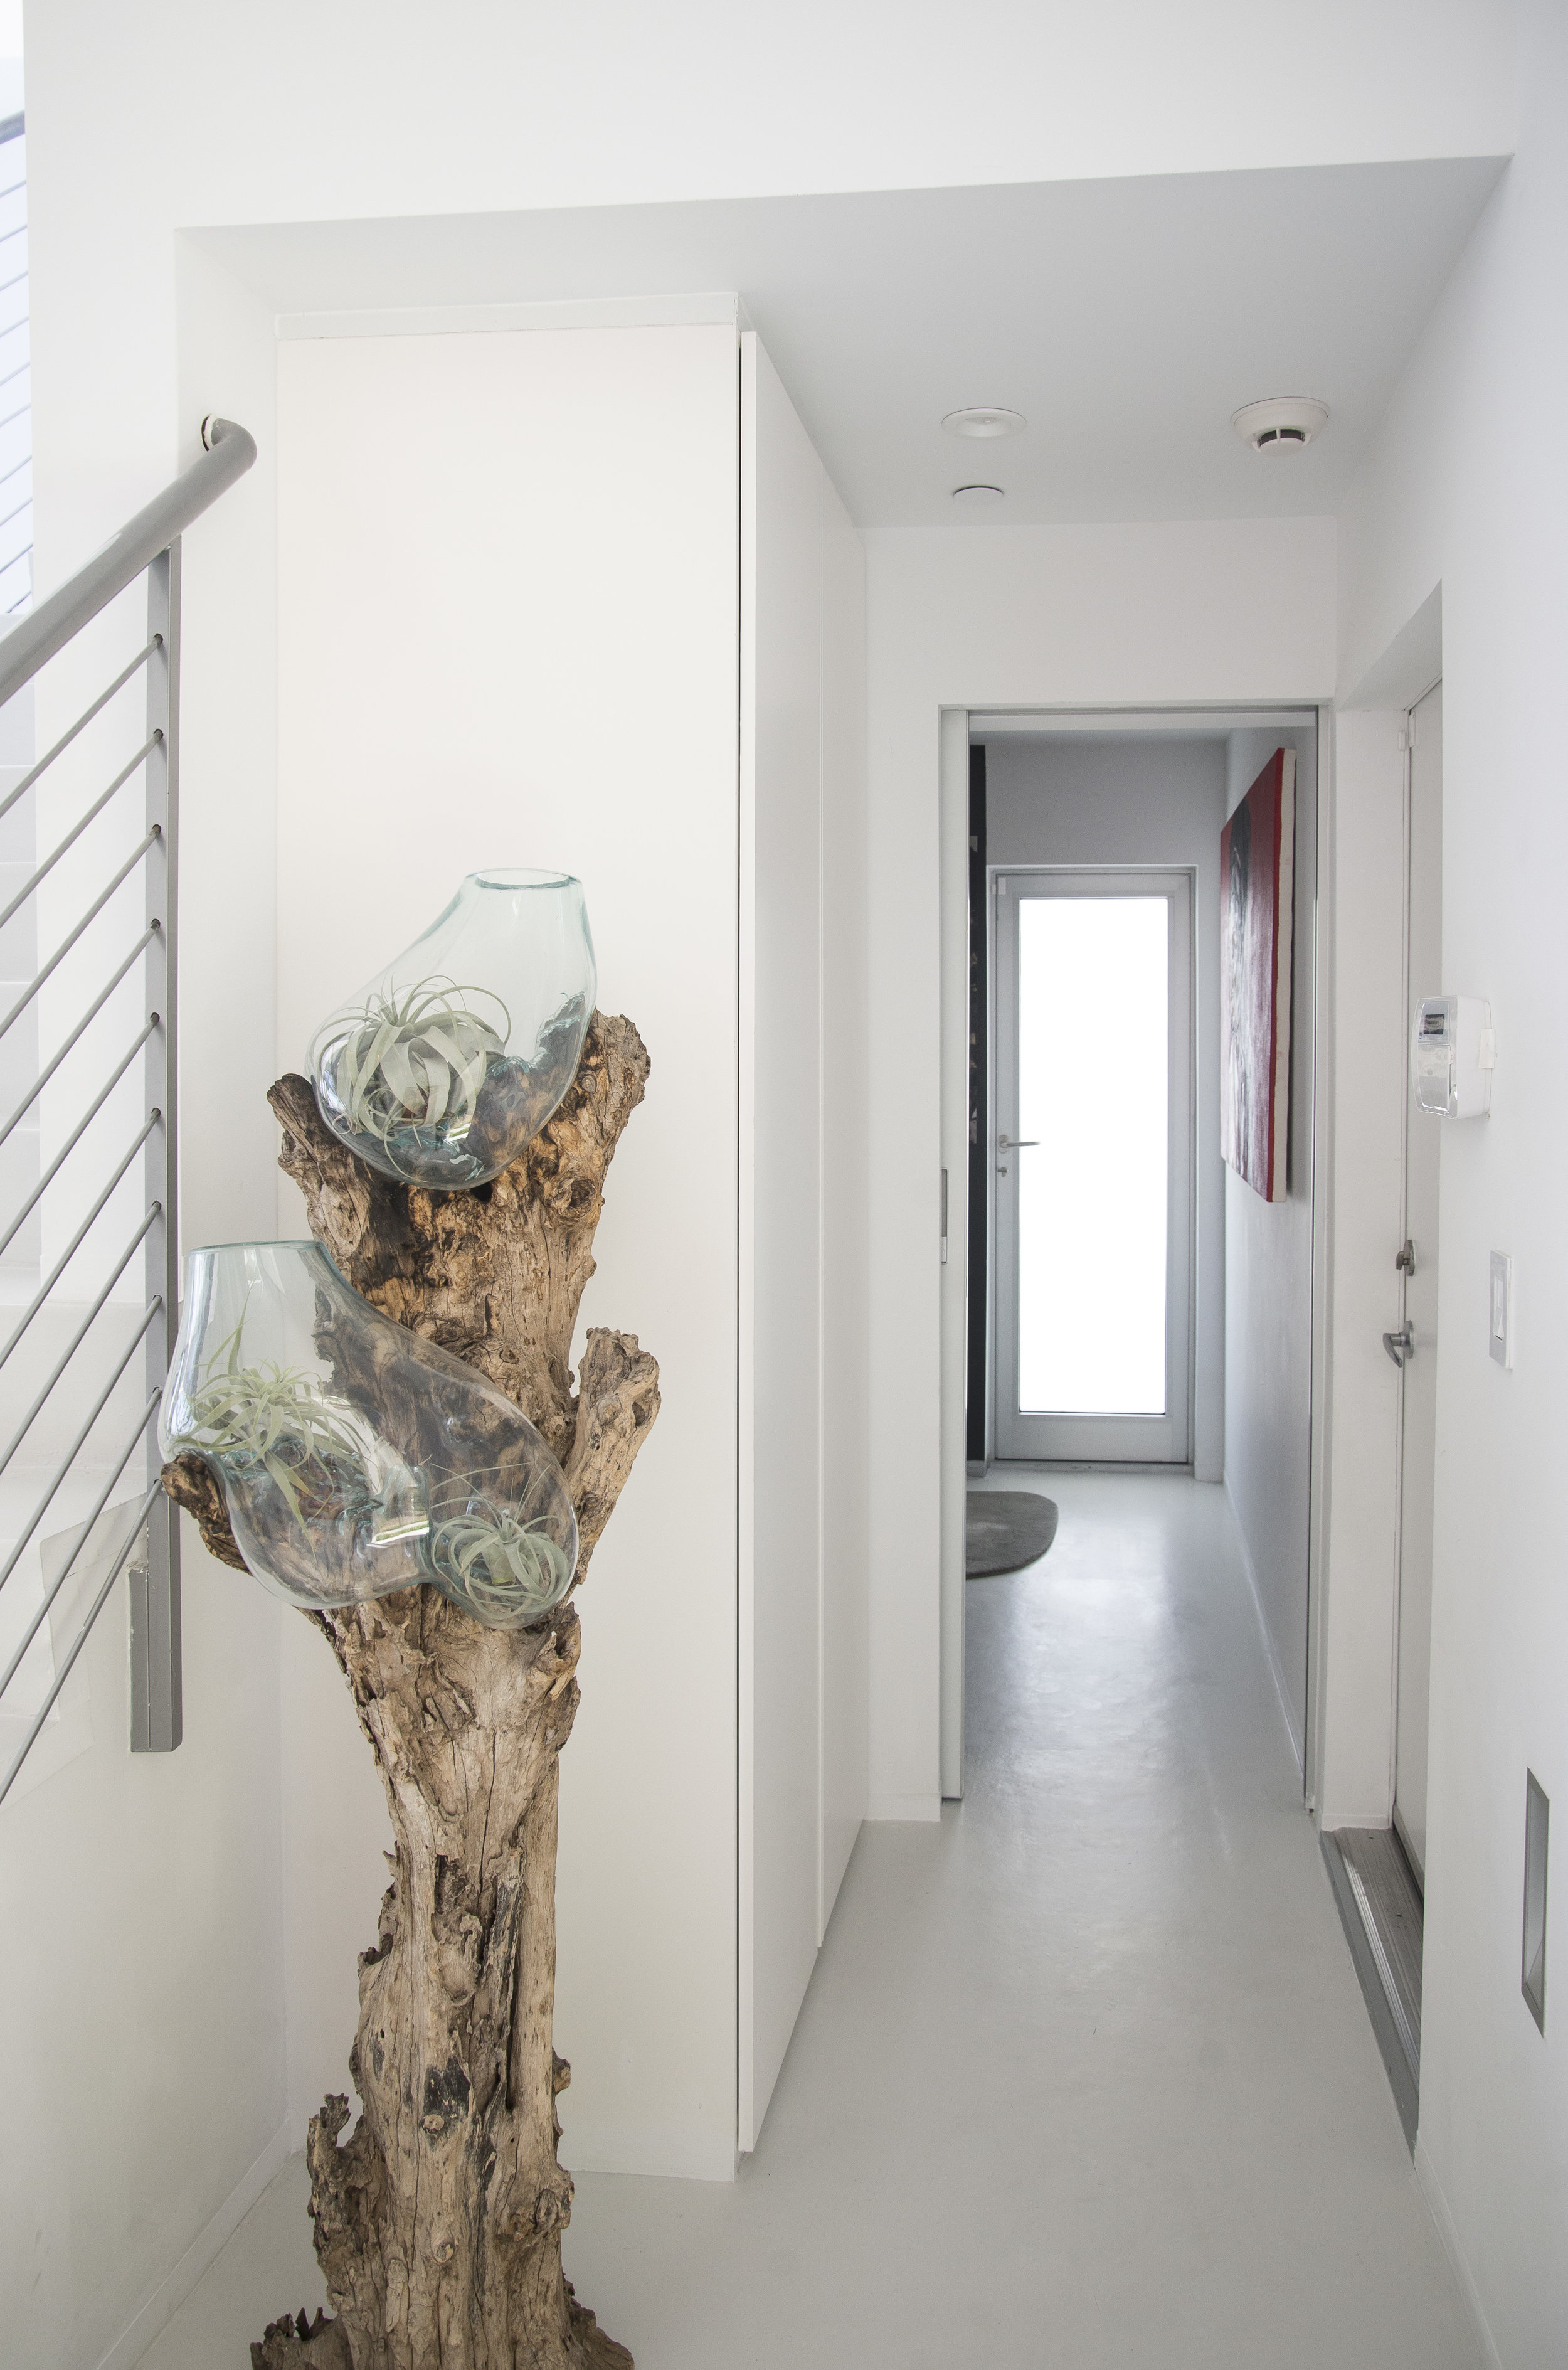 The olive tree with hand made glass vases adds the organic touch to this hallway.